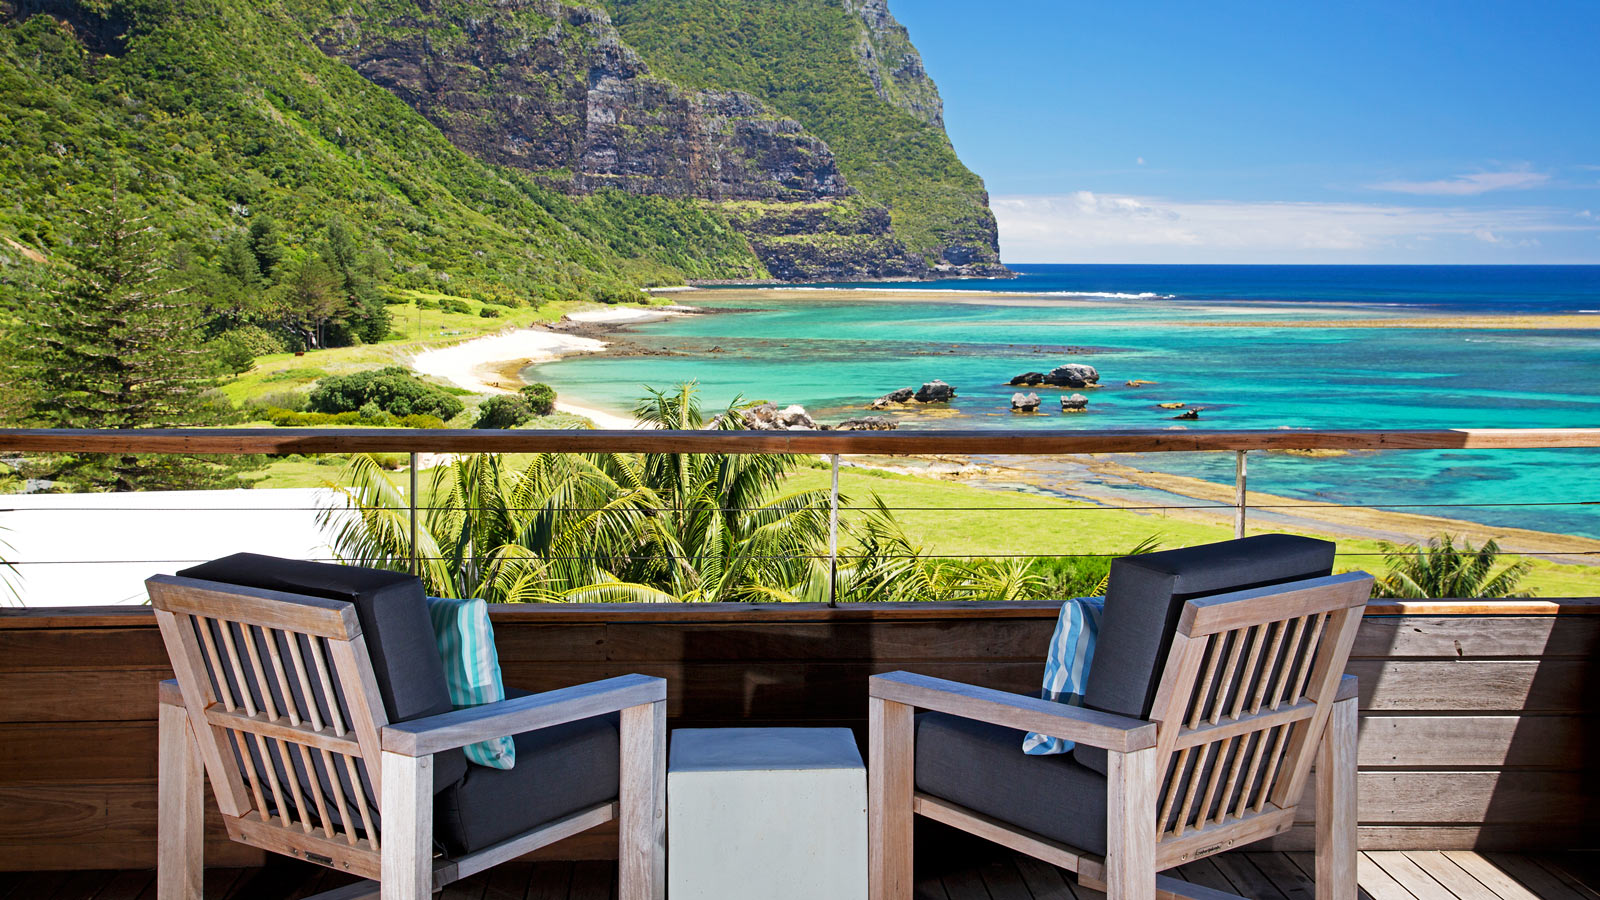 Thumbnail for the listing 'Capella Lodge Lord Howe'